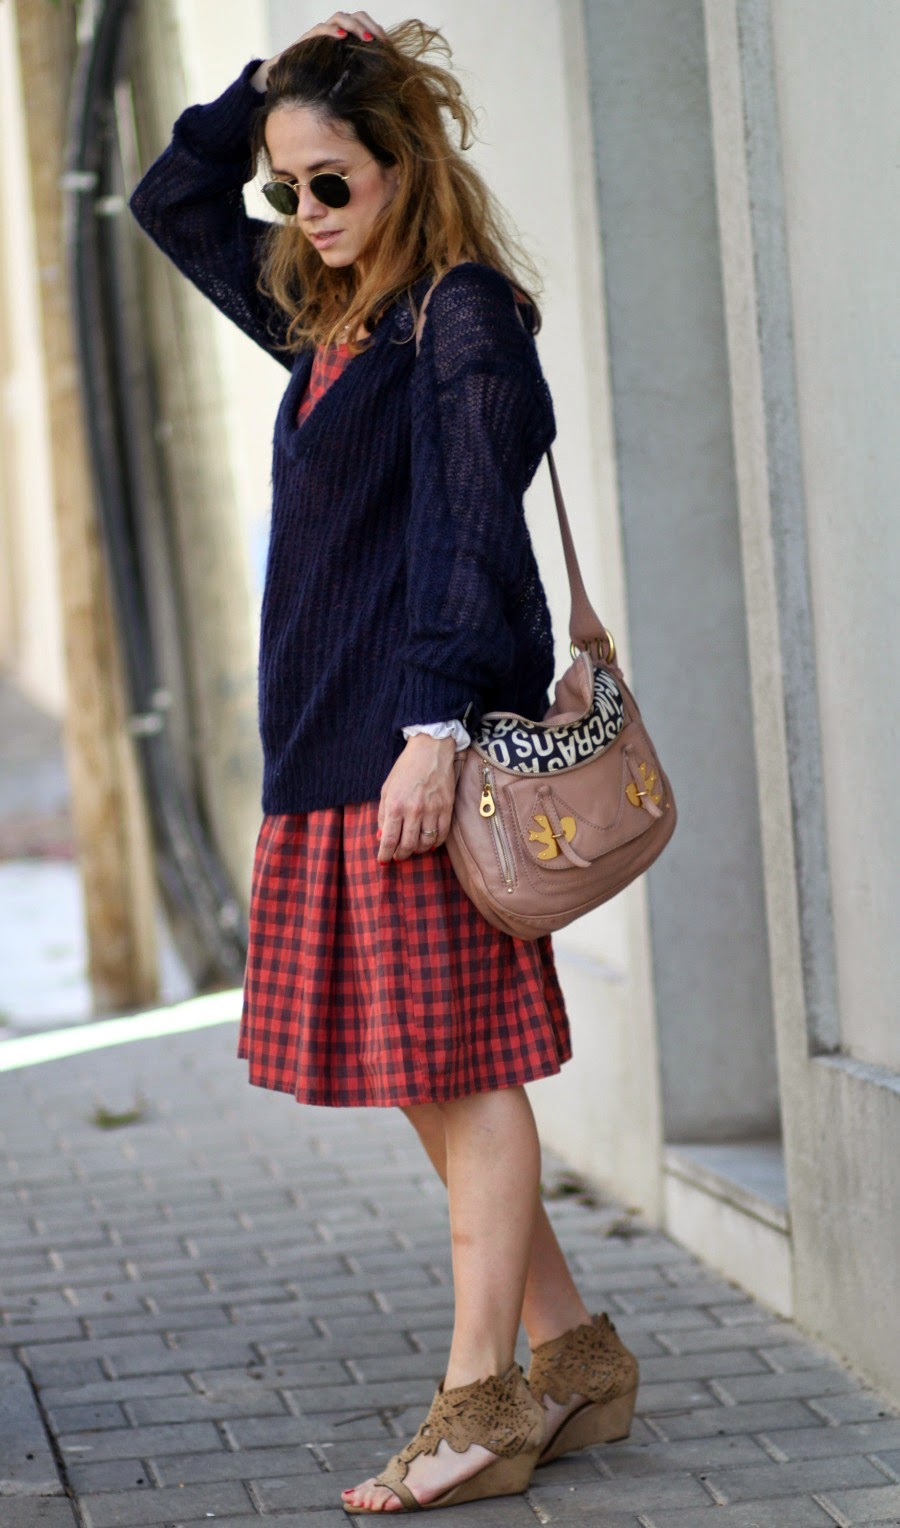 Gingham, dress, paris, pfw, coffee, style, lookoftheday, ss15, blog, fashionblog, בלוגאופנה, אופנה